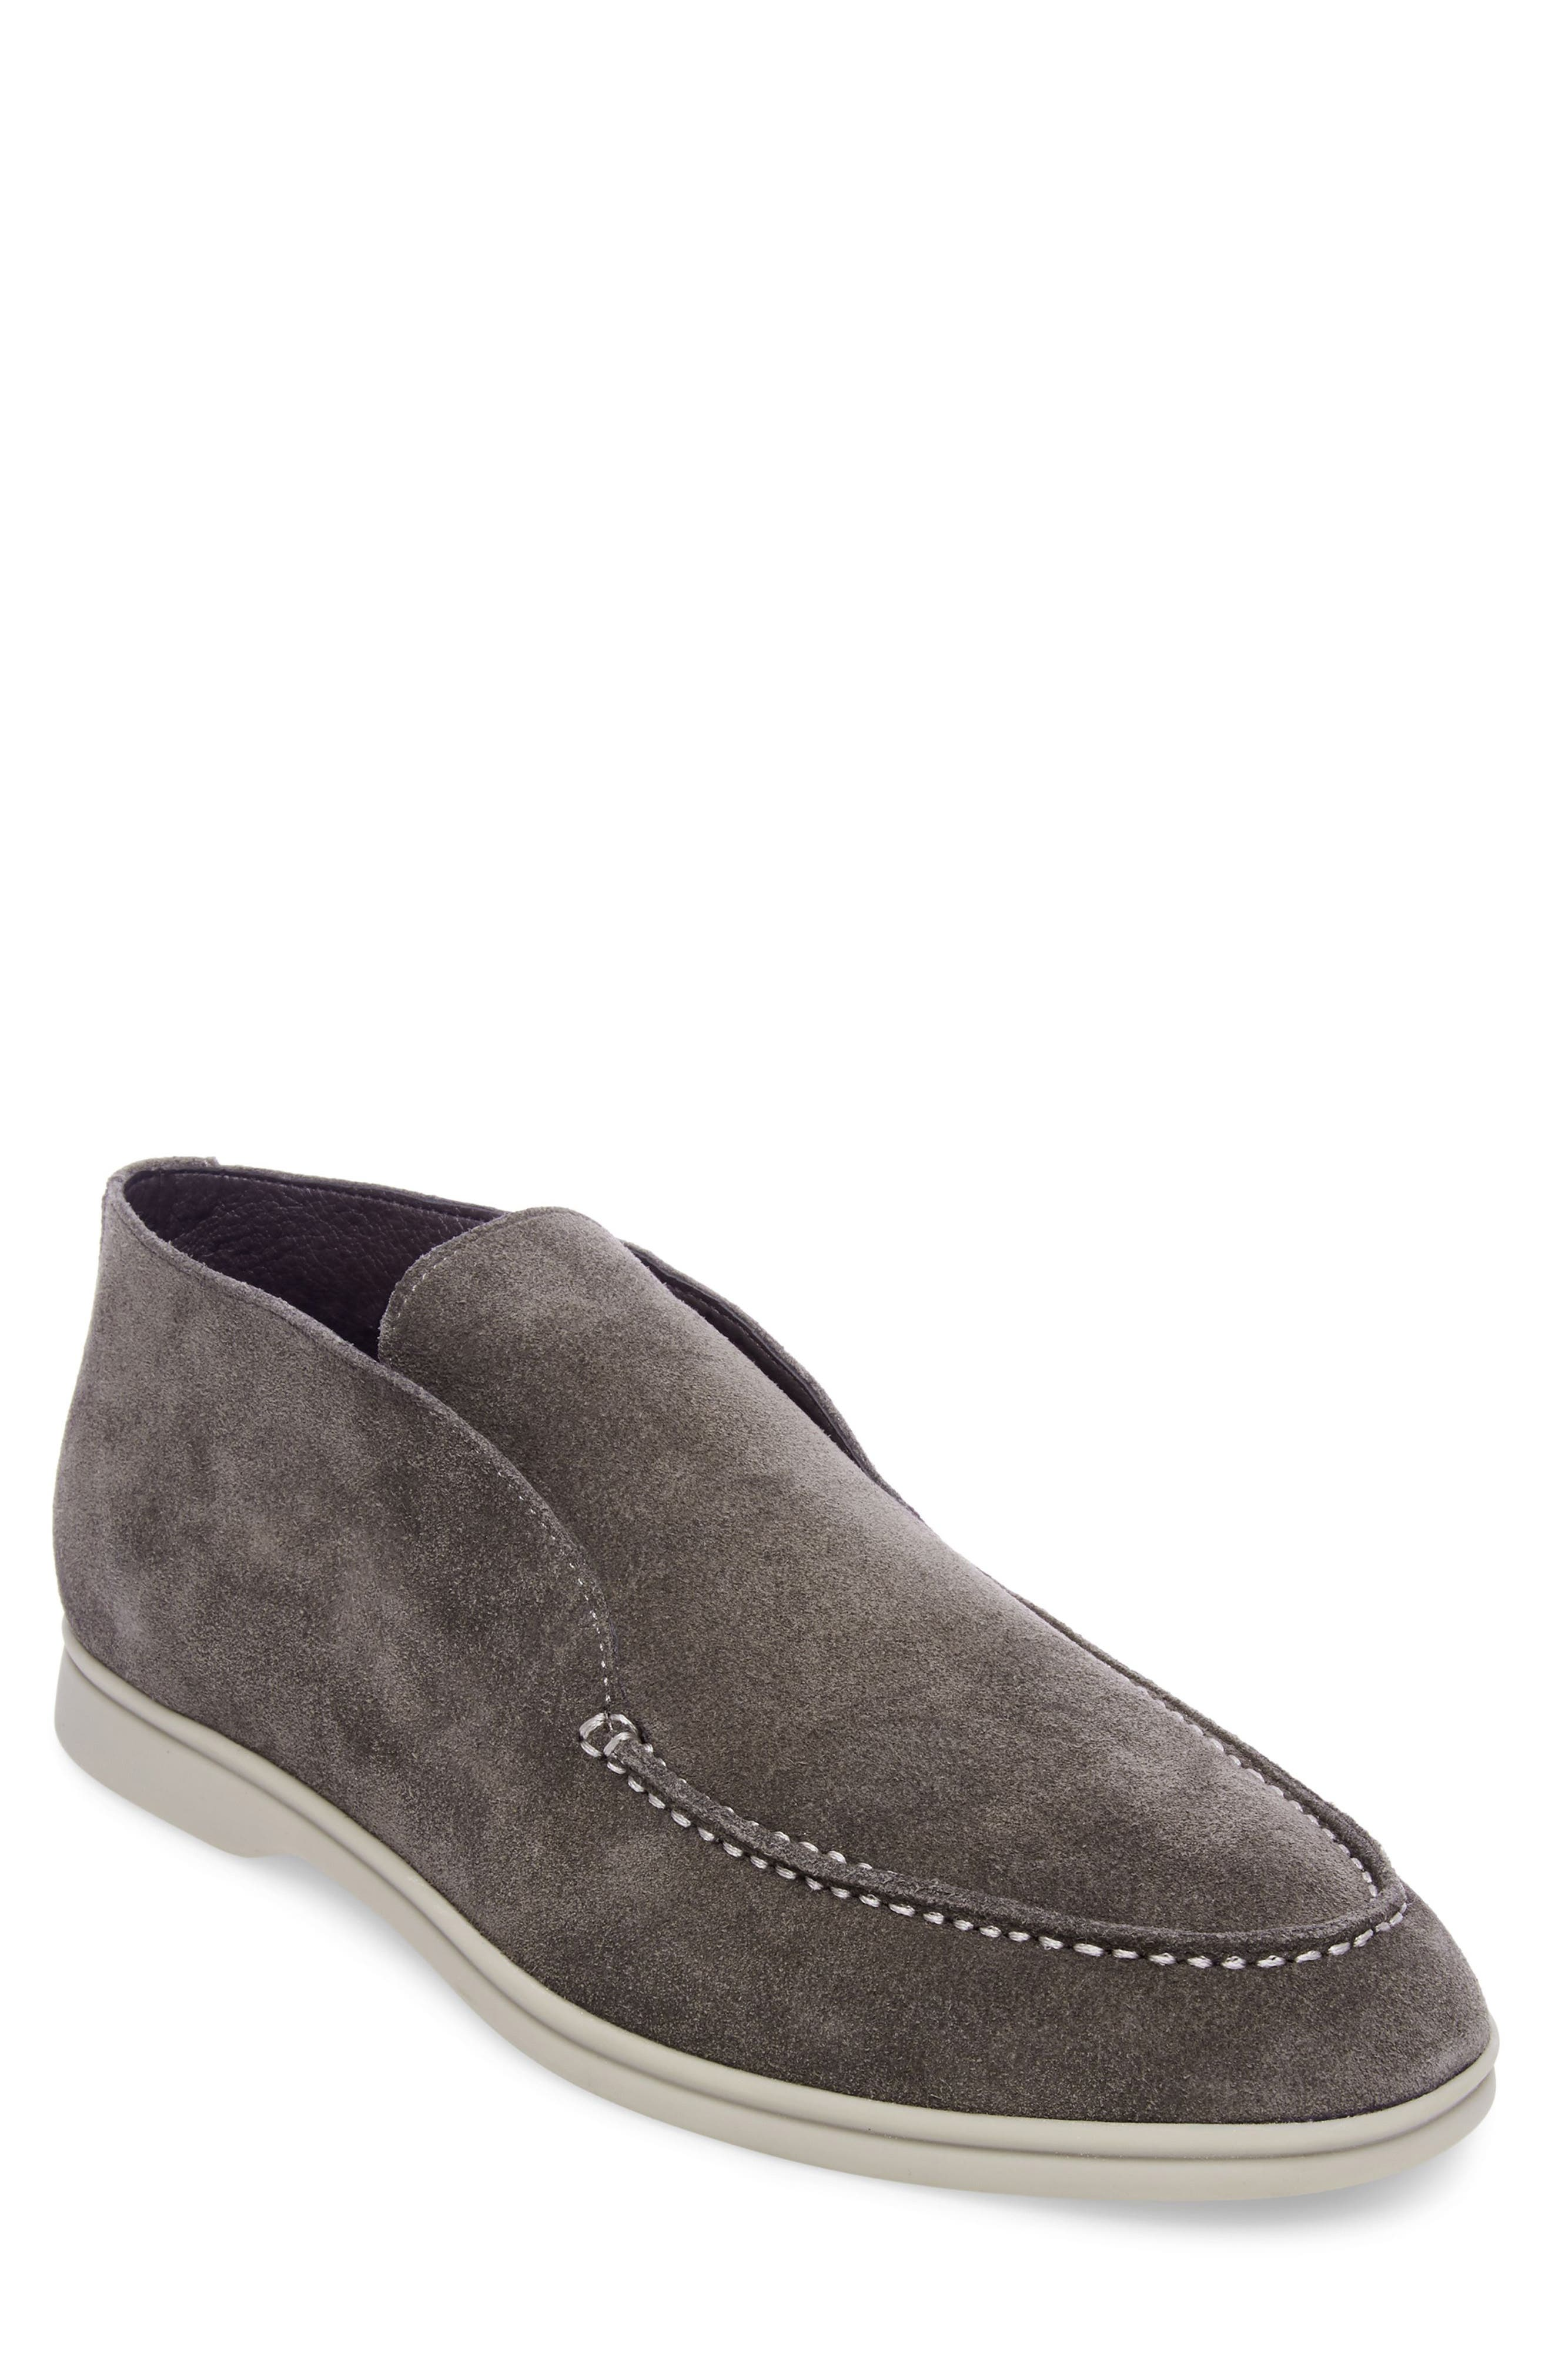 Lost Boot,                             Main thumbnail 1, color,                             Taupe Suede